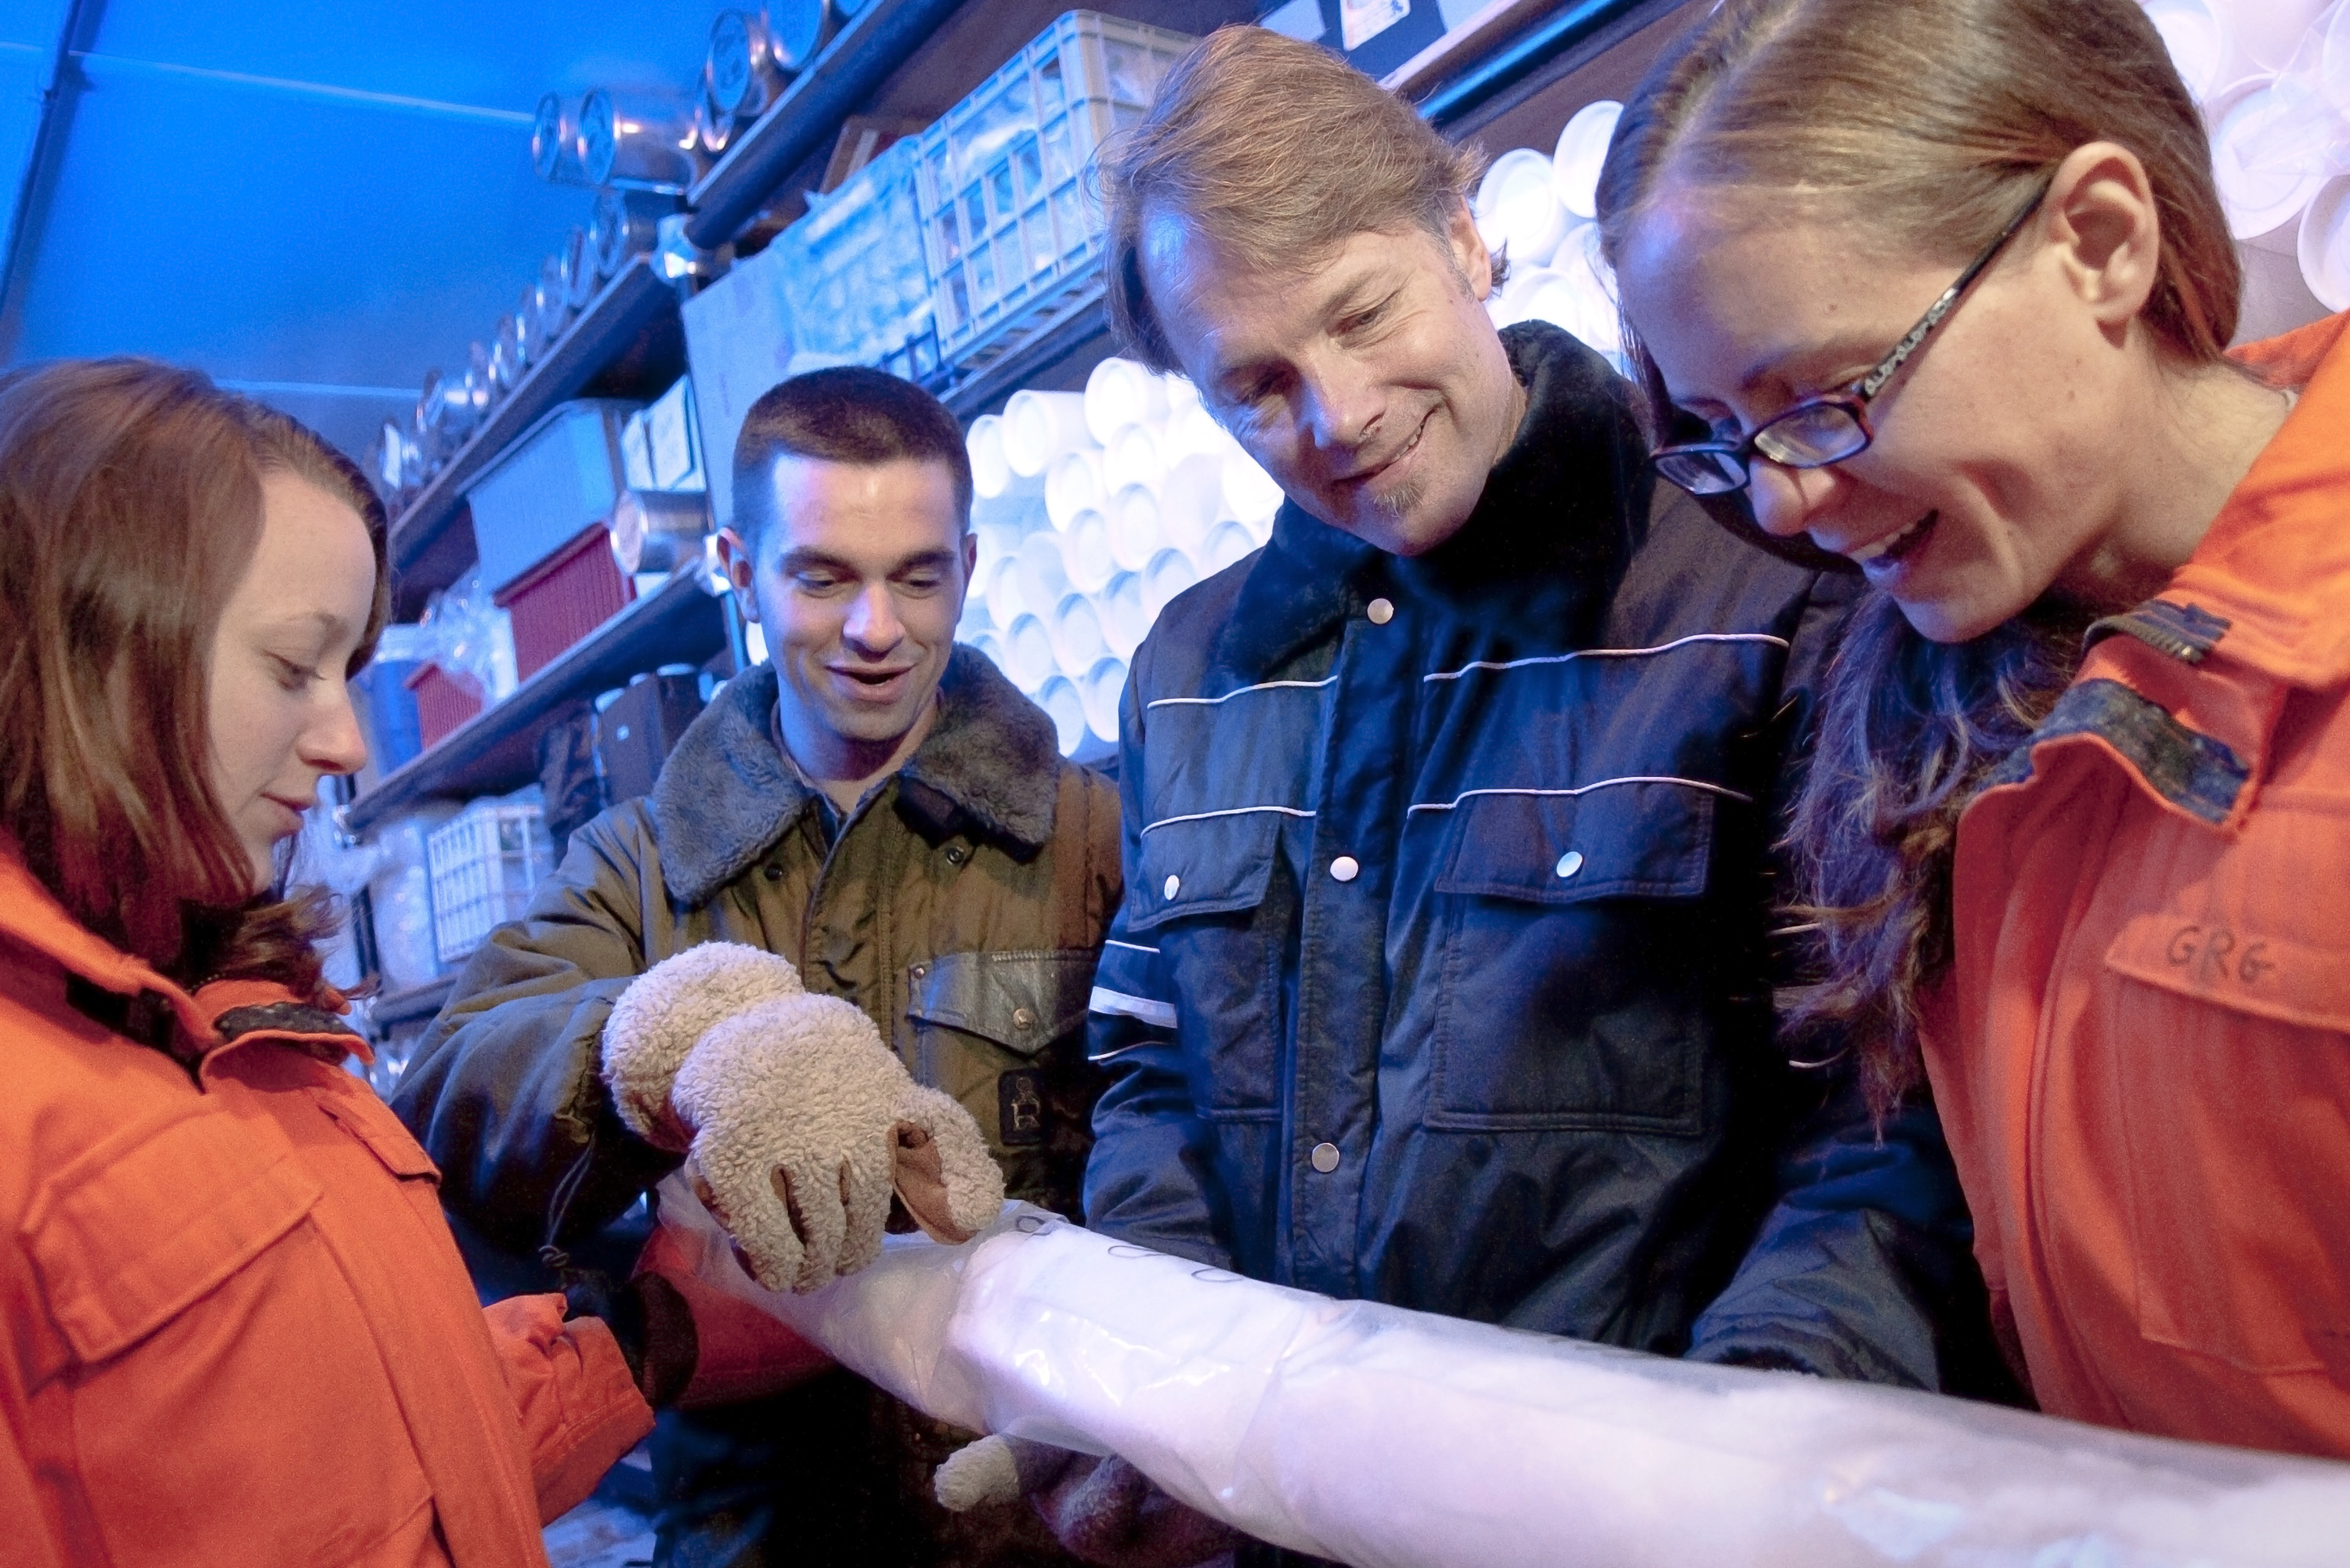 Two men and two women stand around an ice core they are holding while wearing very warm clothing.